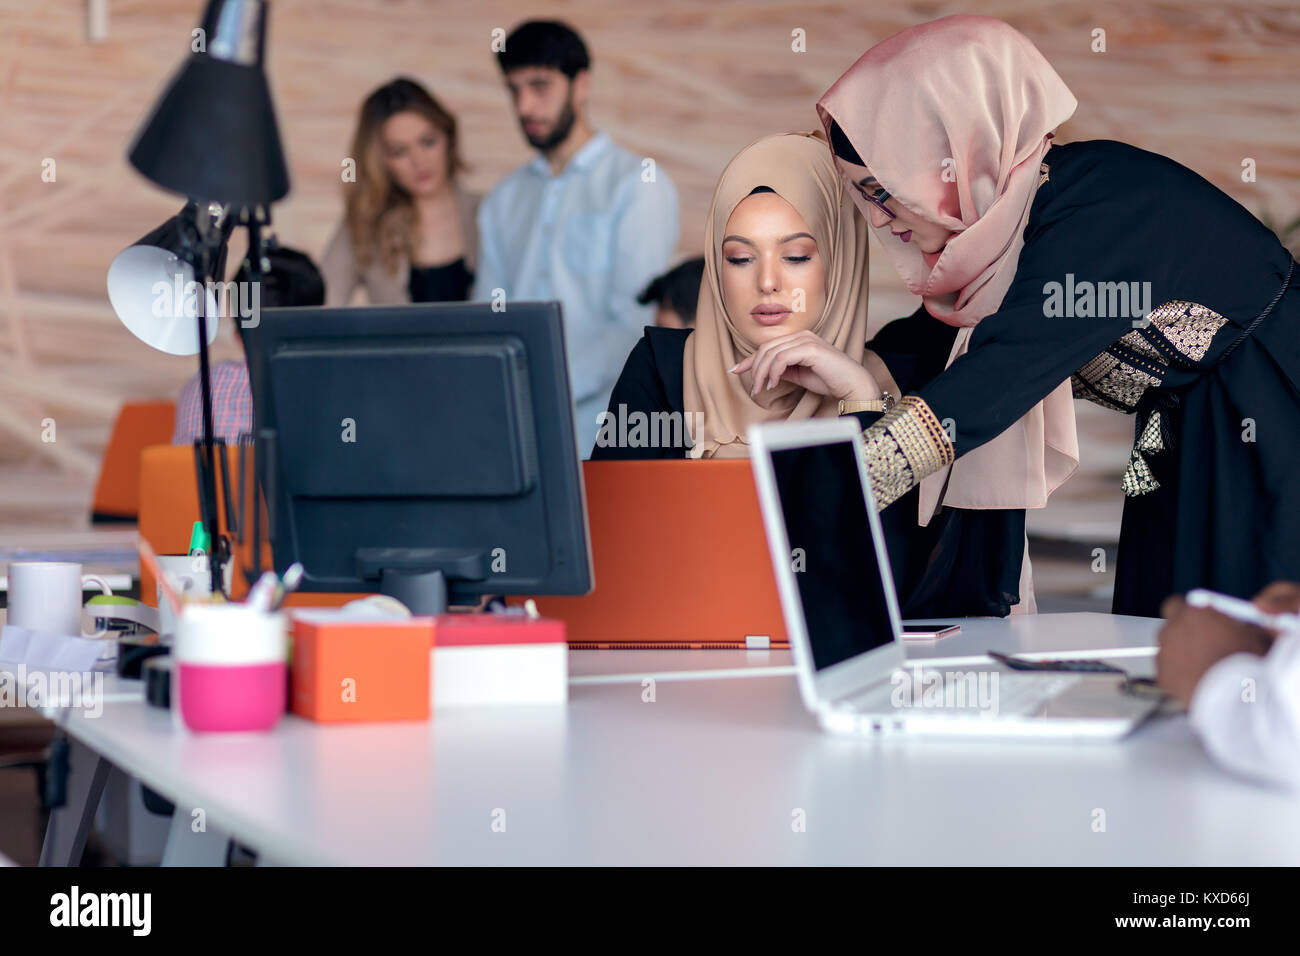 Business colleagues in hijabs looking at the computer monitor - Stock Image